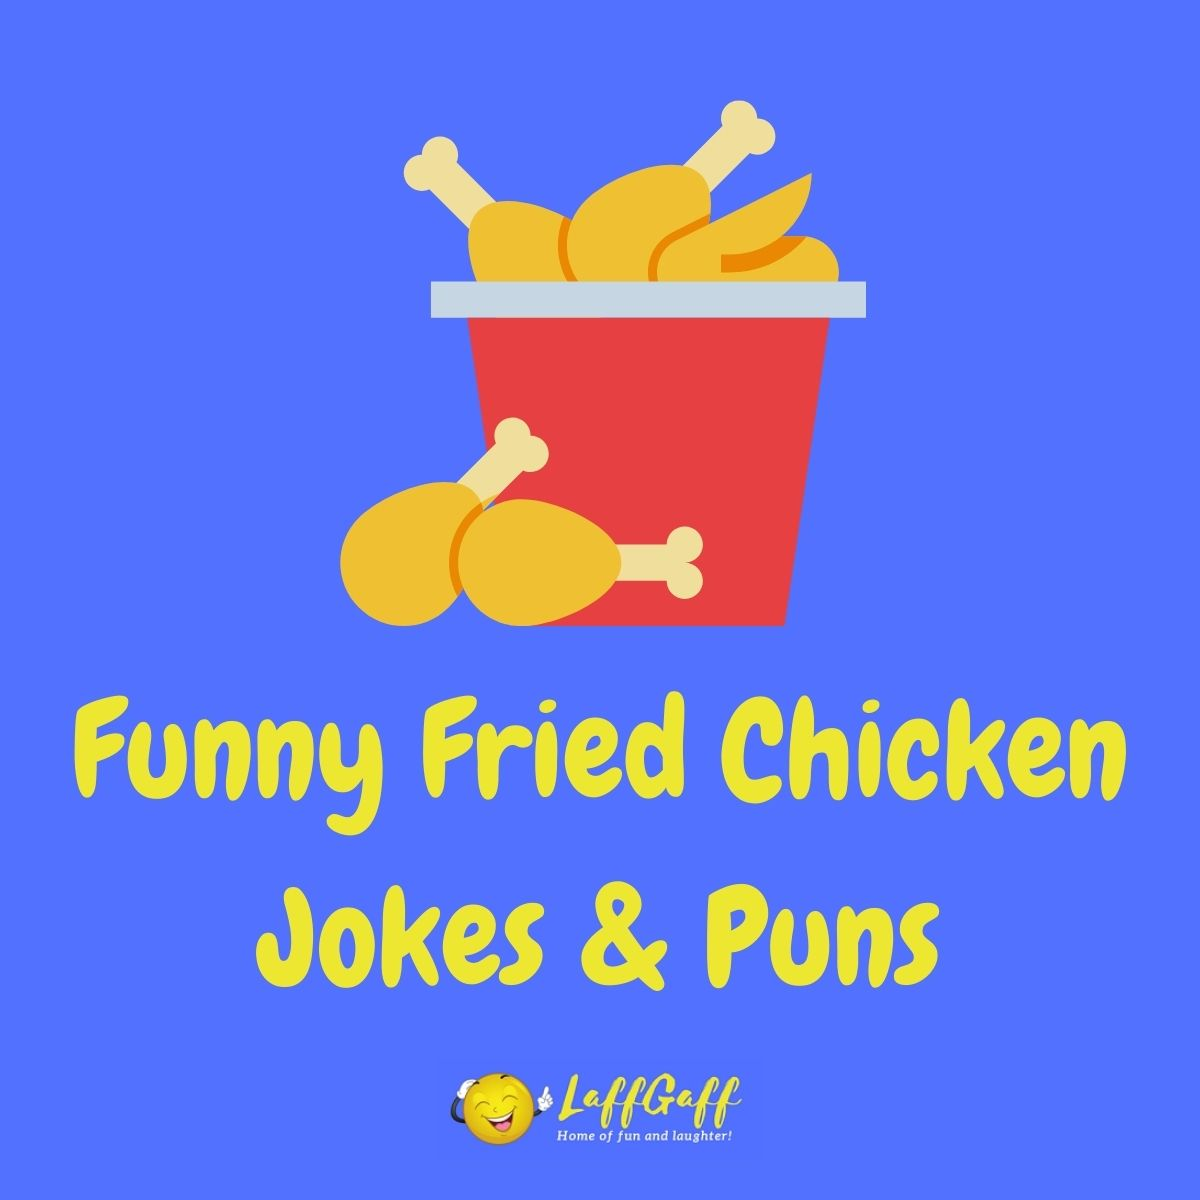 Featured image for a page of funny fried chicken jokes and puns.